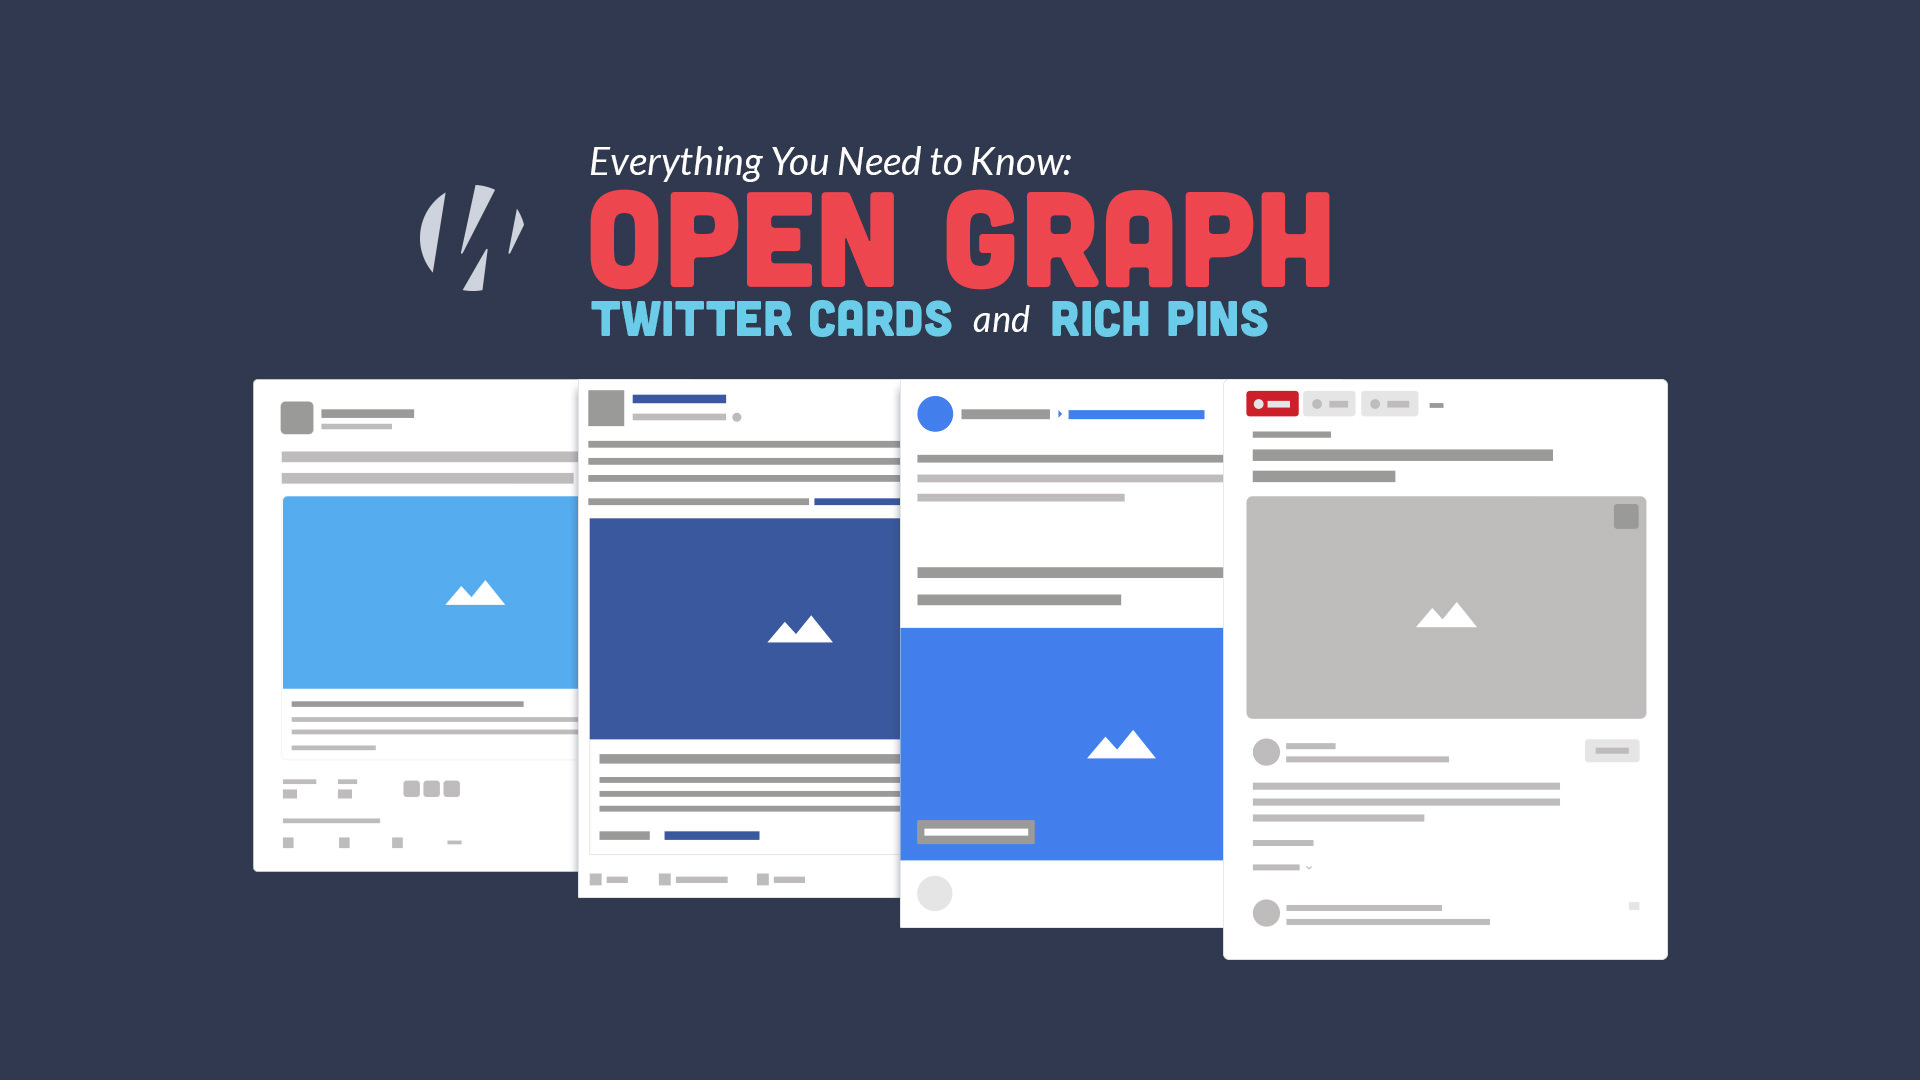 open graph, twitter cards and rich pins